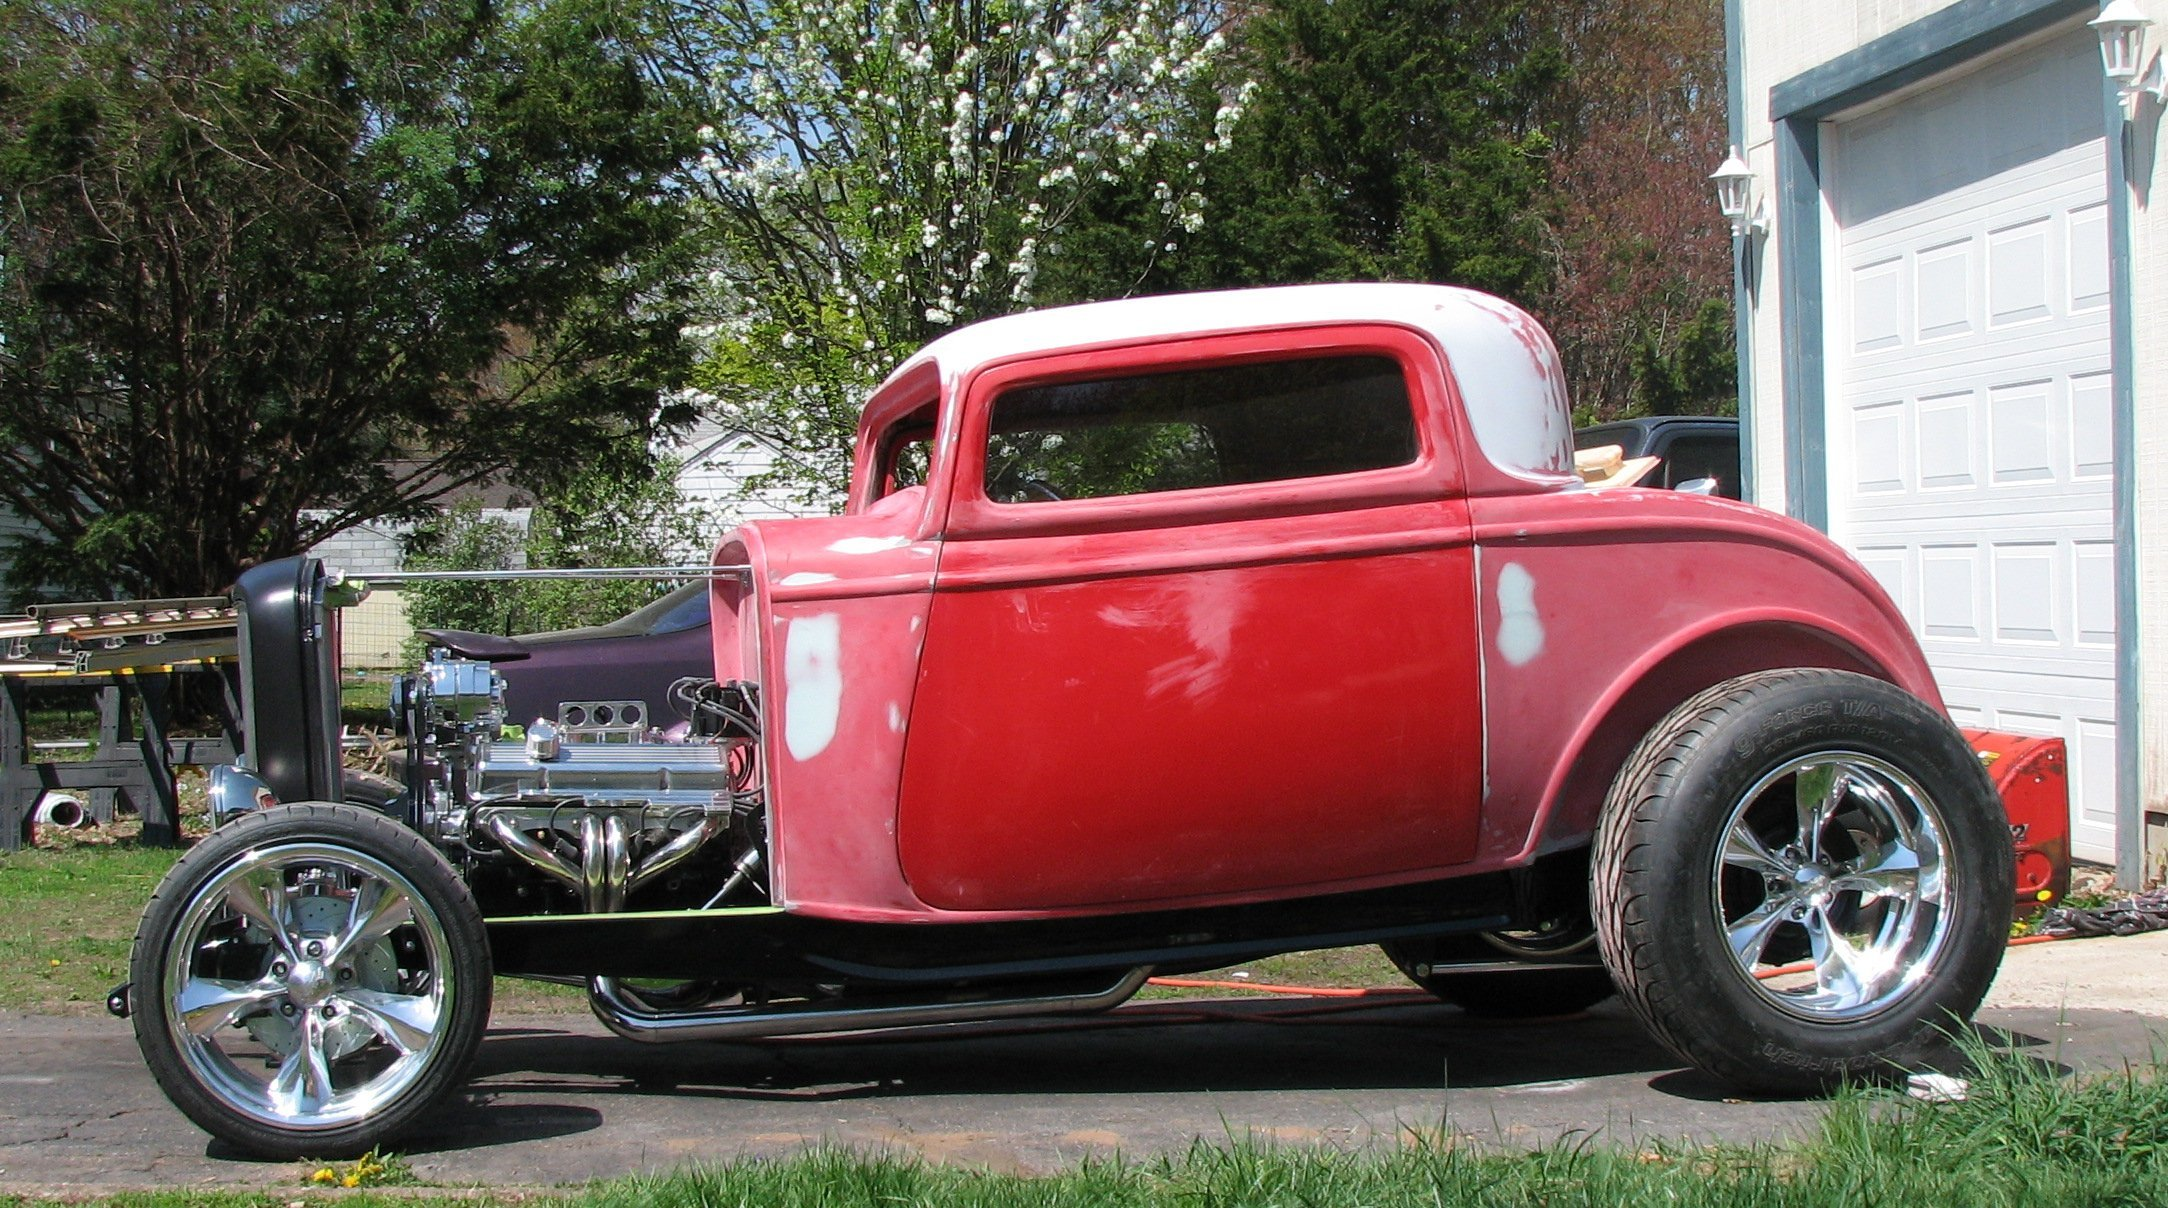 Another grimreaperracing 1932 Ford Coupe post... Photo 10810721